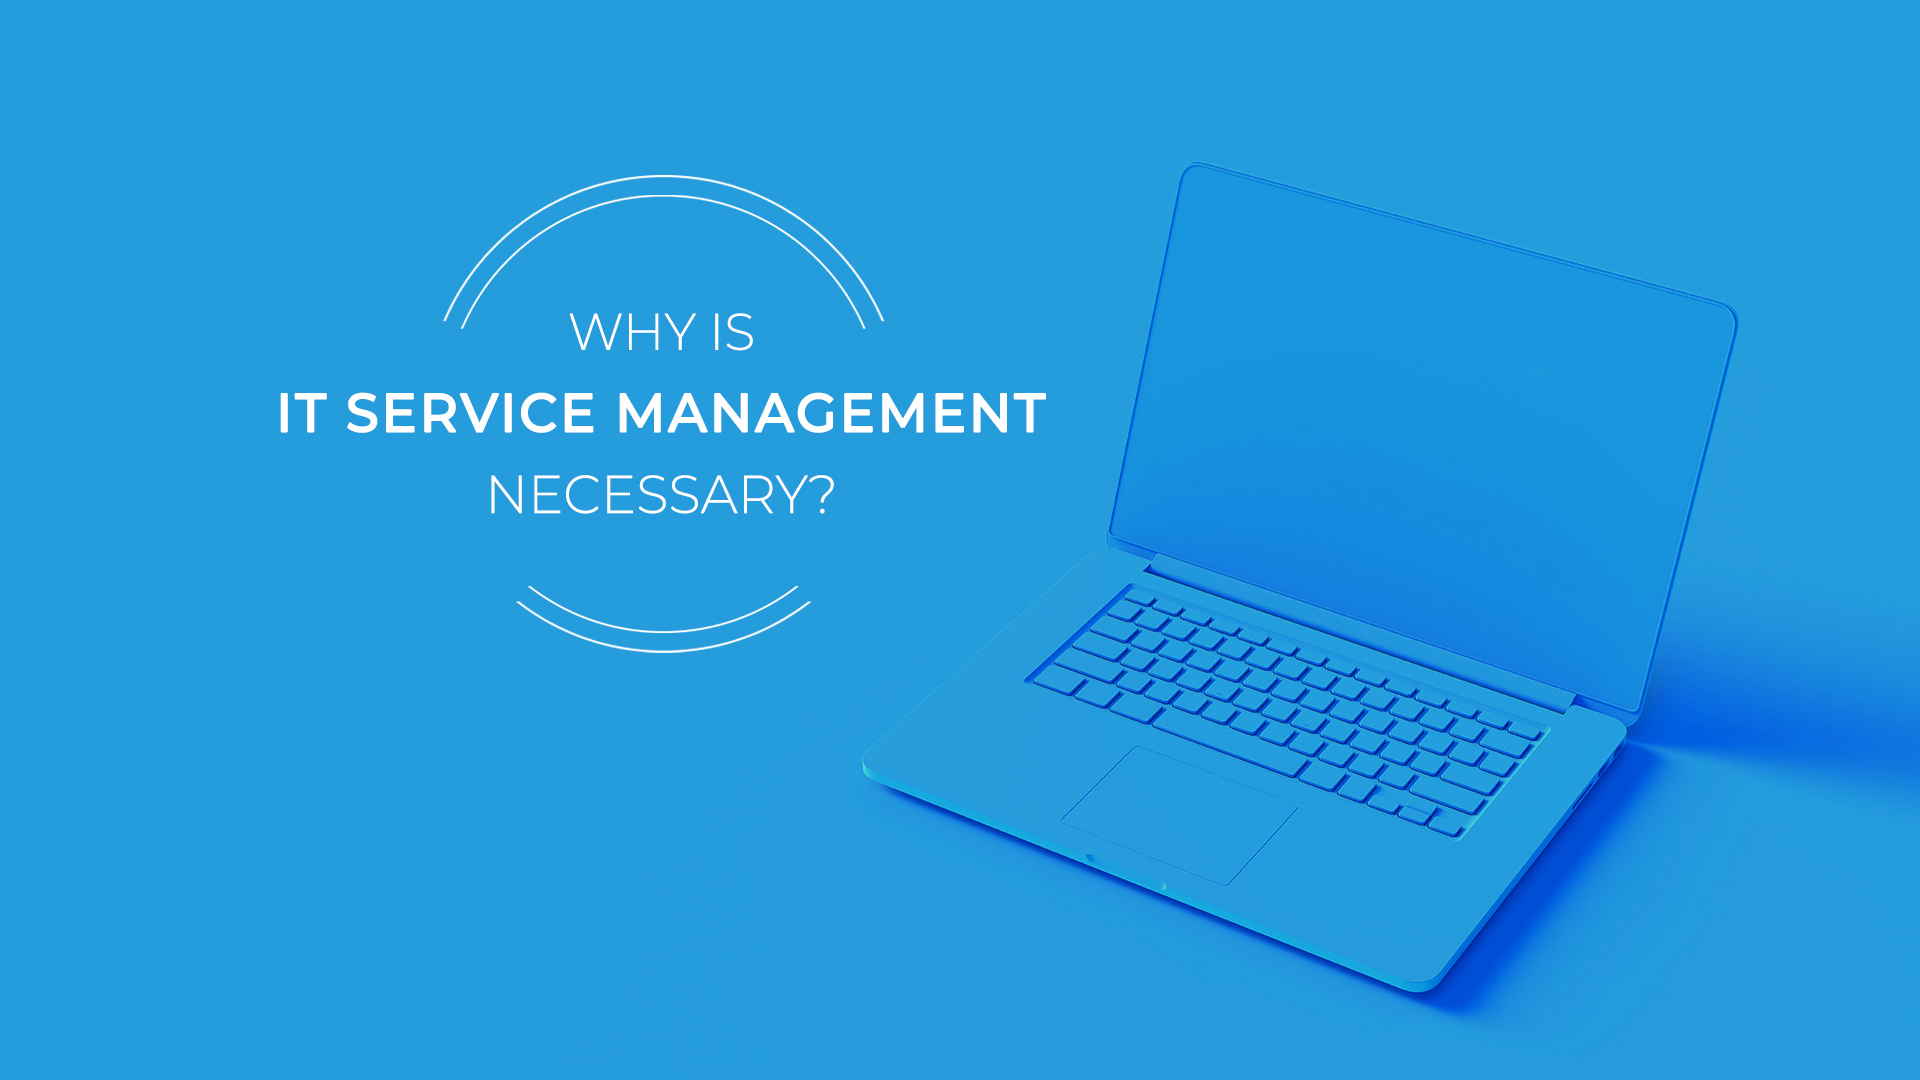 Why Is IT Service Management Necessary?